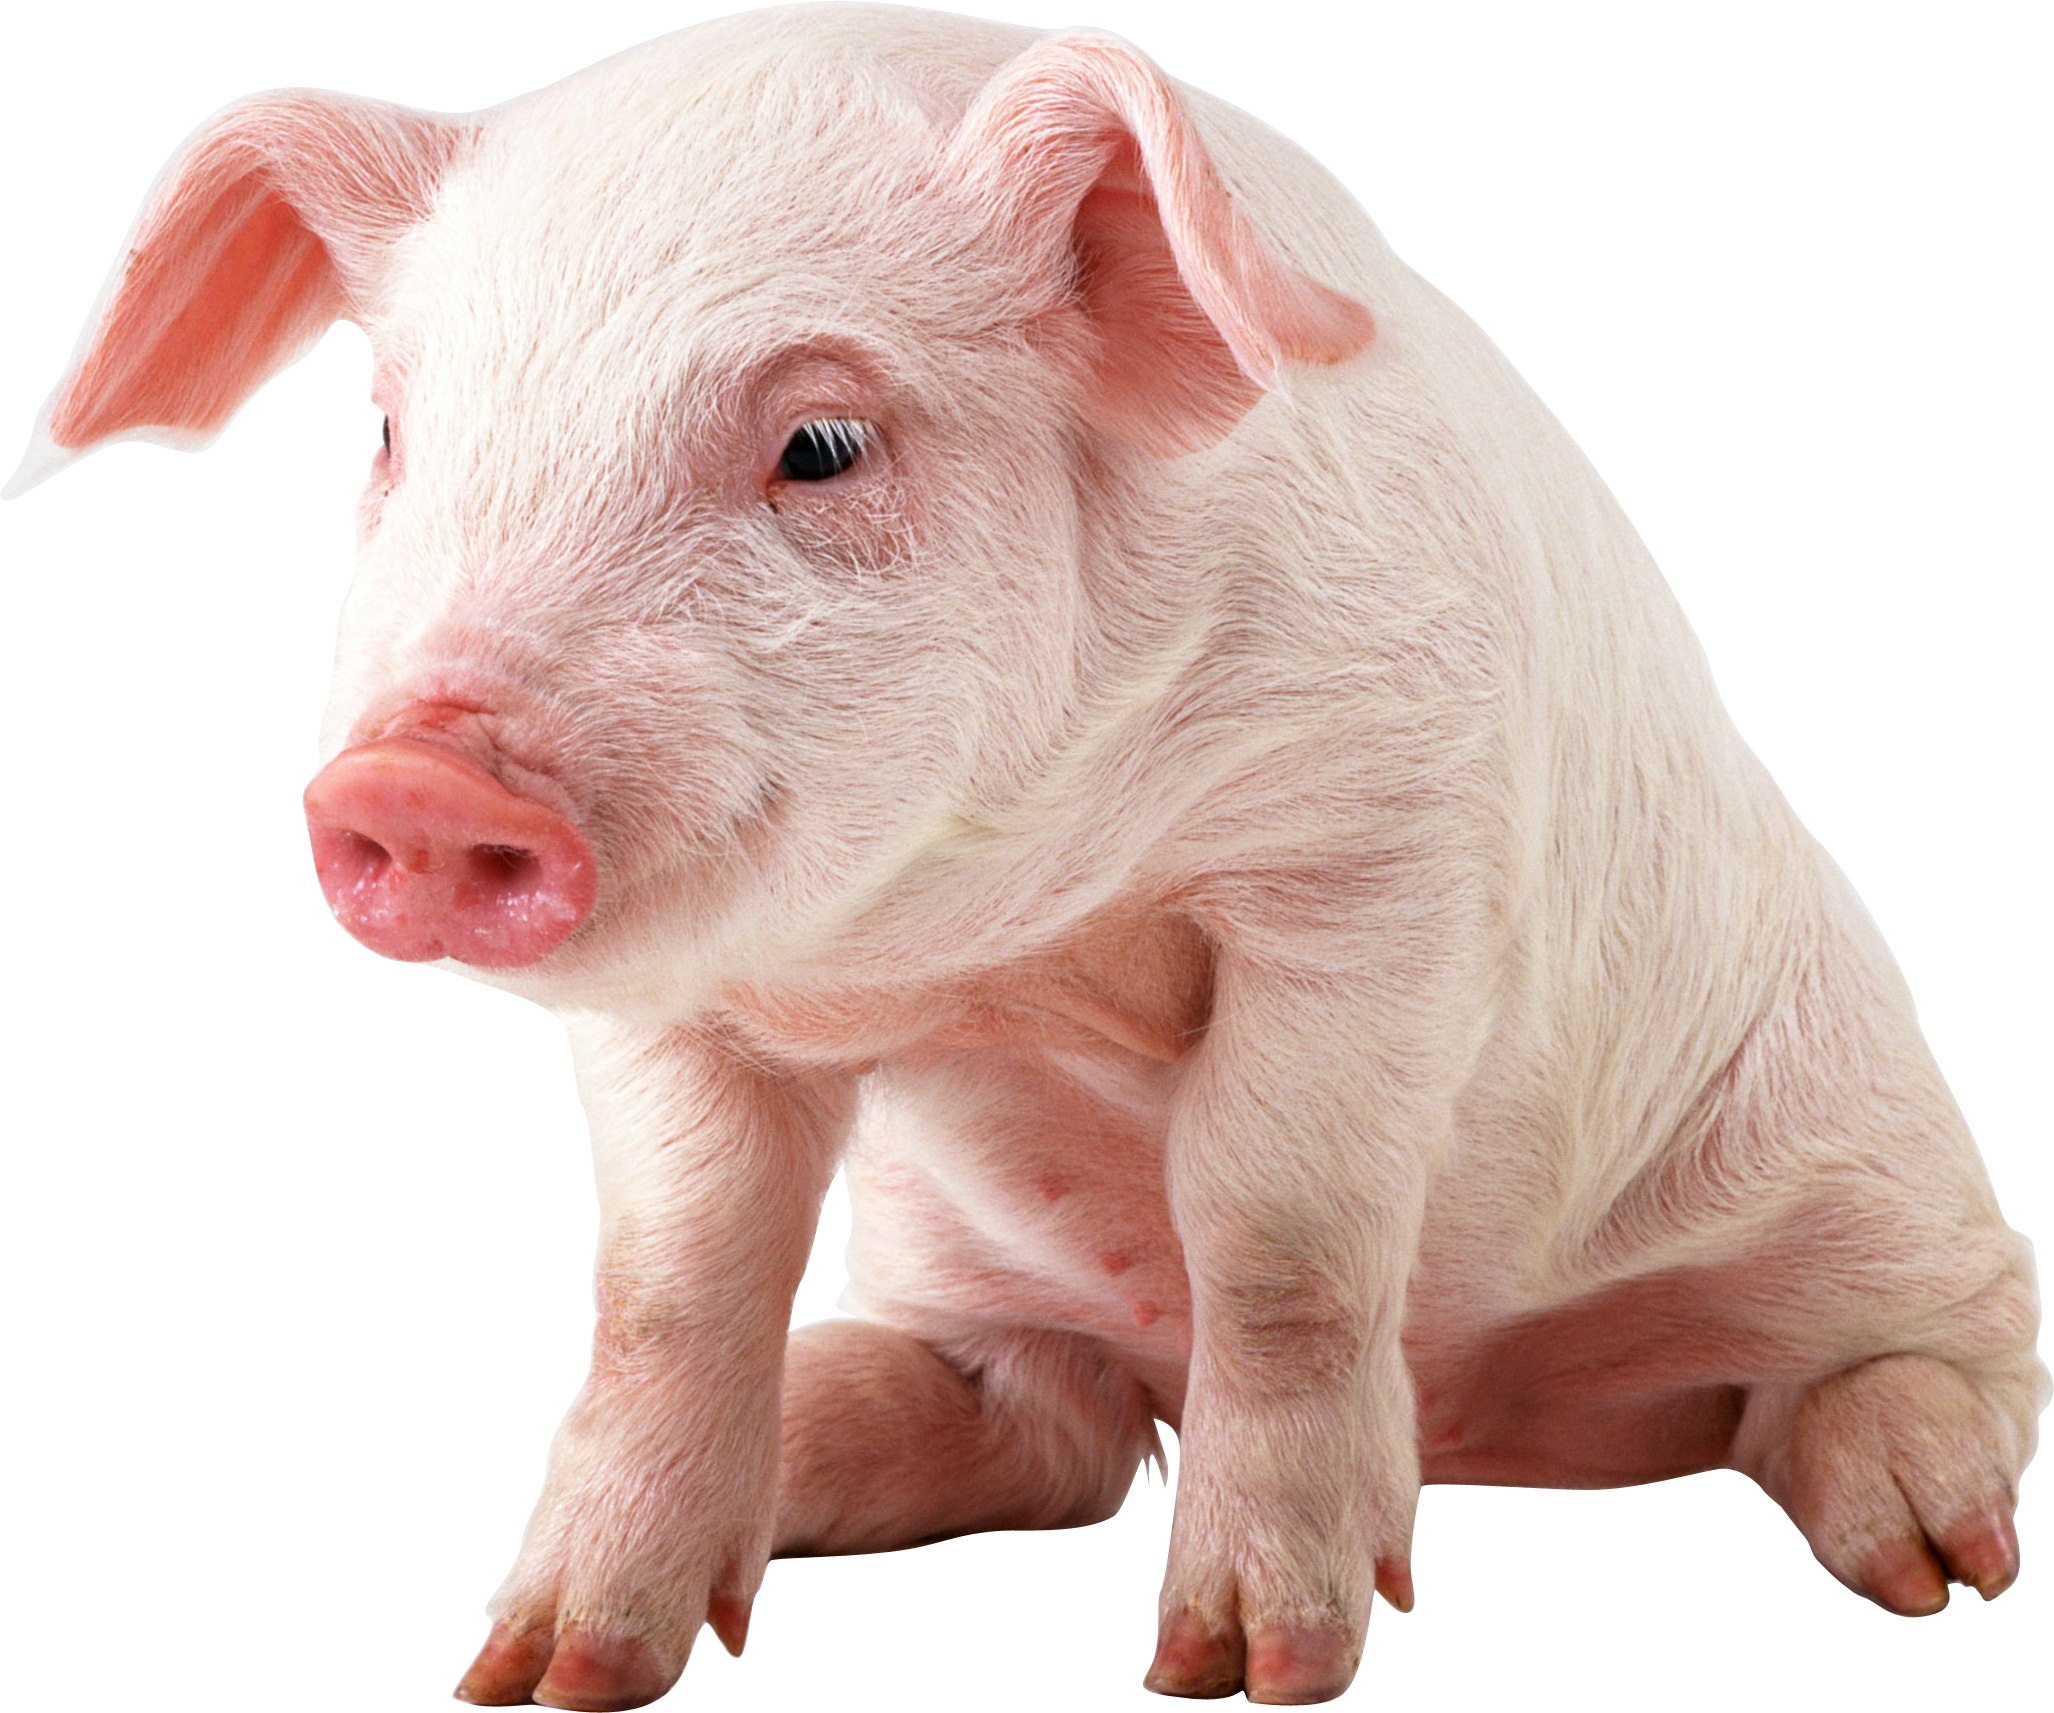 Baby pig png hd. Pigs clipart transparent background